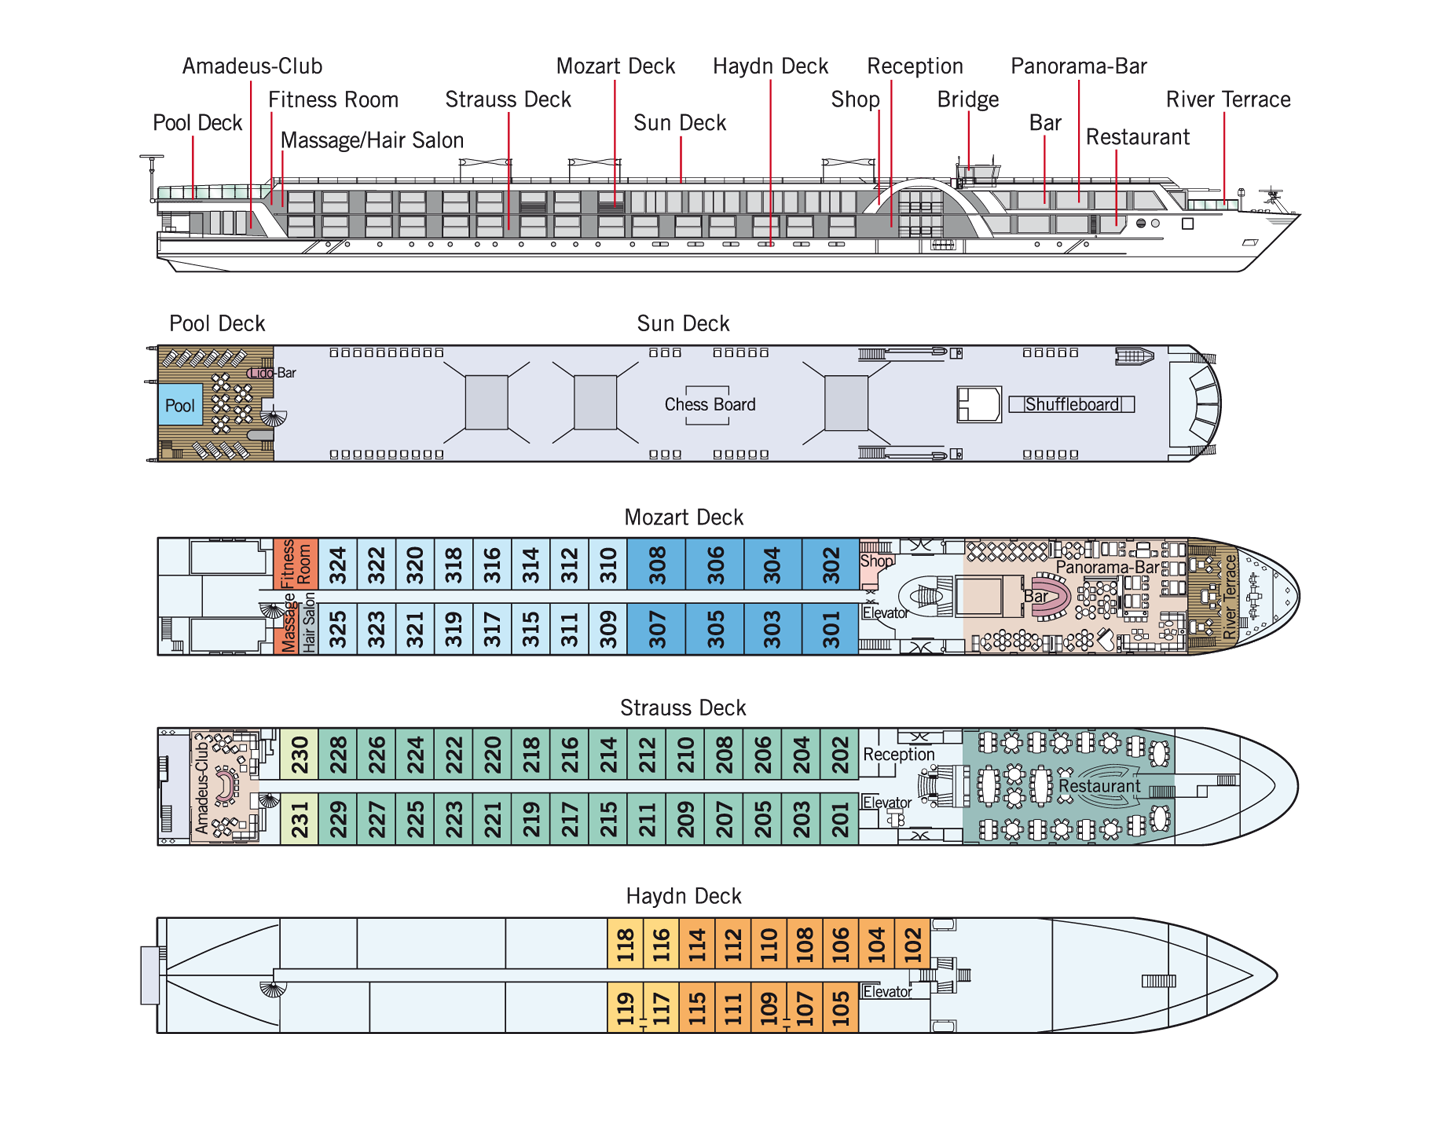 Lftner cruises ms amadeus provence deck plan baanklon Image collections